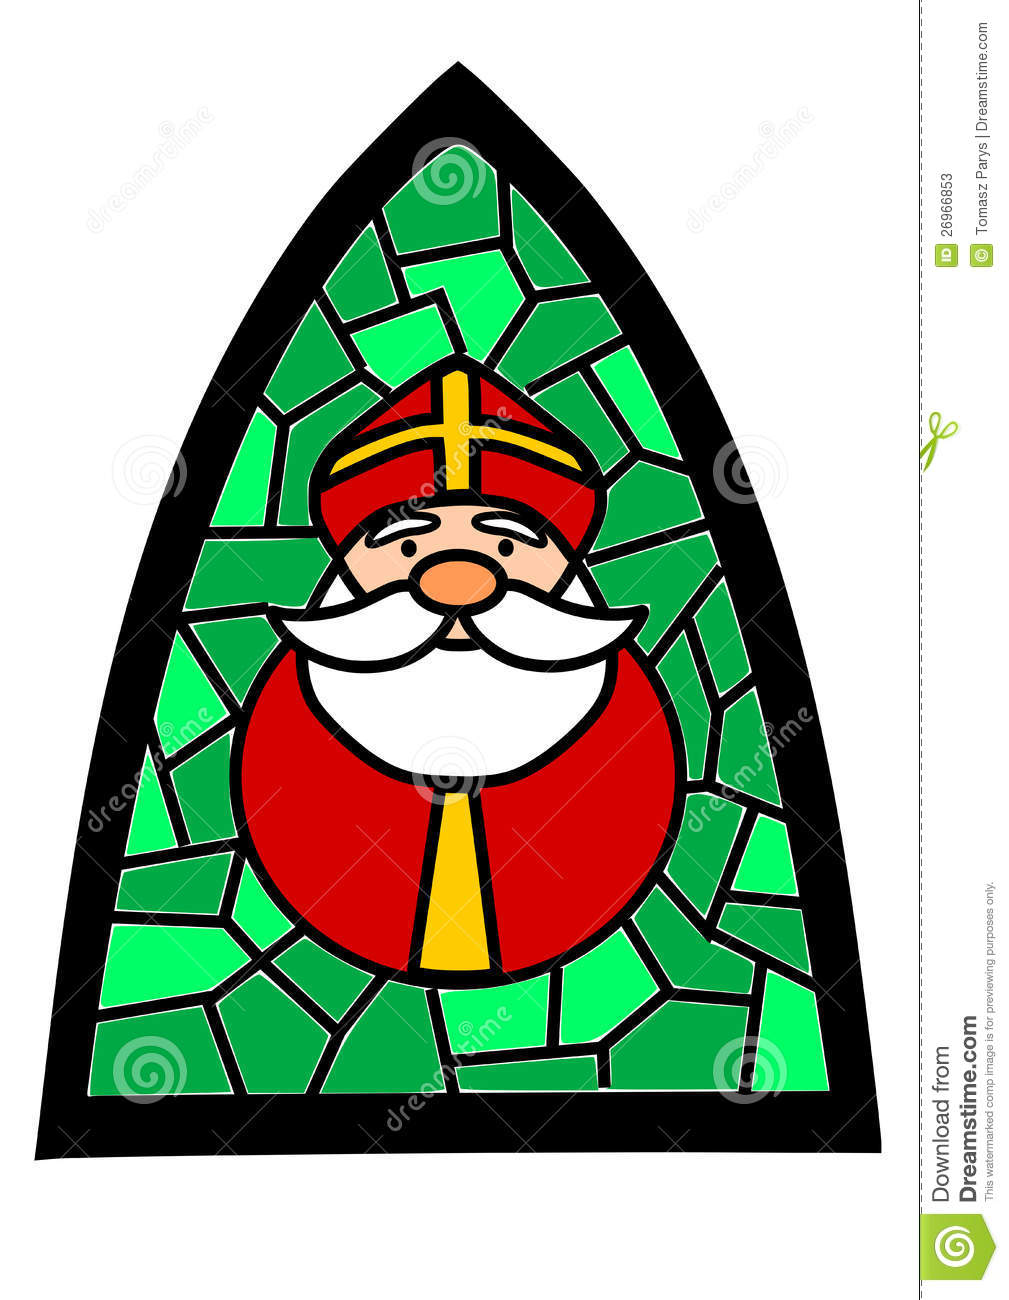 Cartoon Santa Claus Face Outline Wiring Diagrams Hainan Mazda Parking Sensor Circuit Automotivecircuit Stained Glass With Stock Photos Image 26966853 Printable Pattern